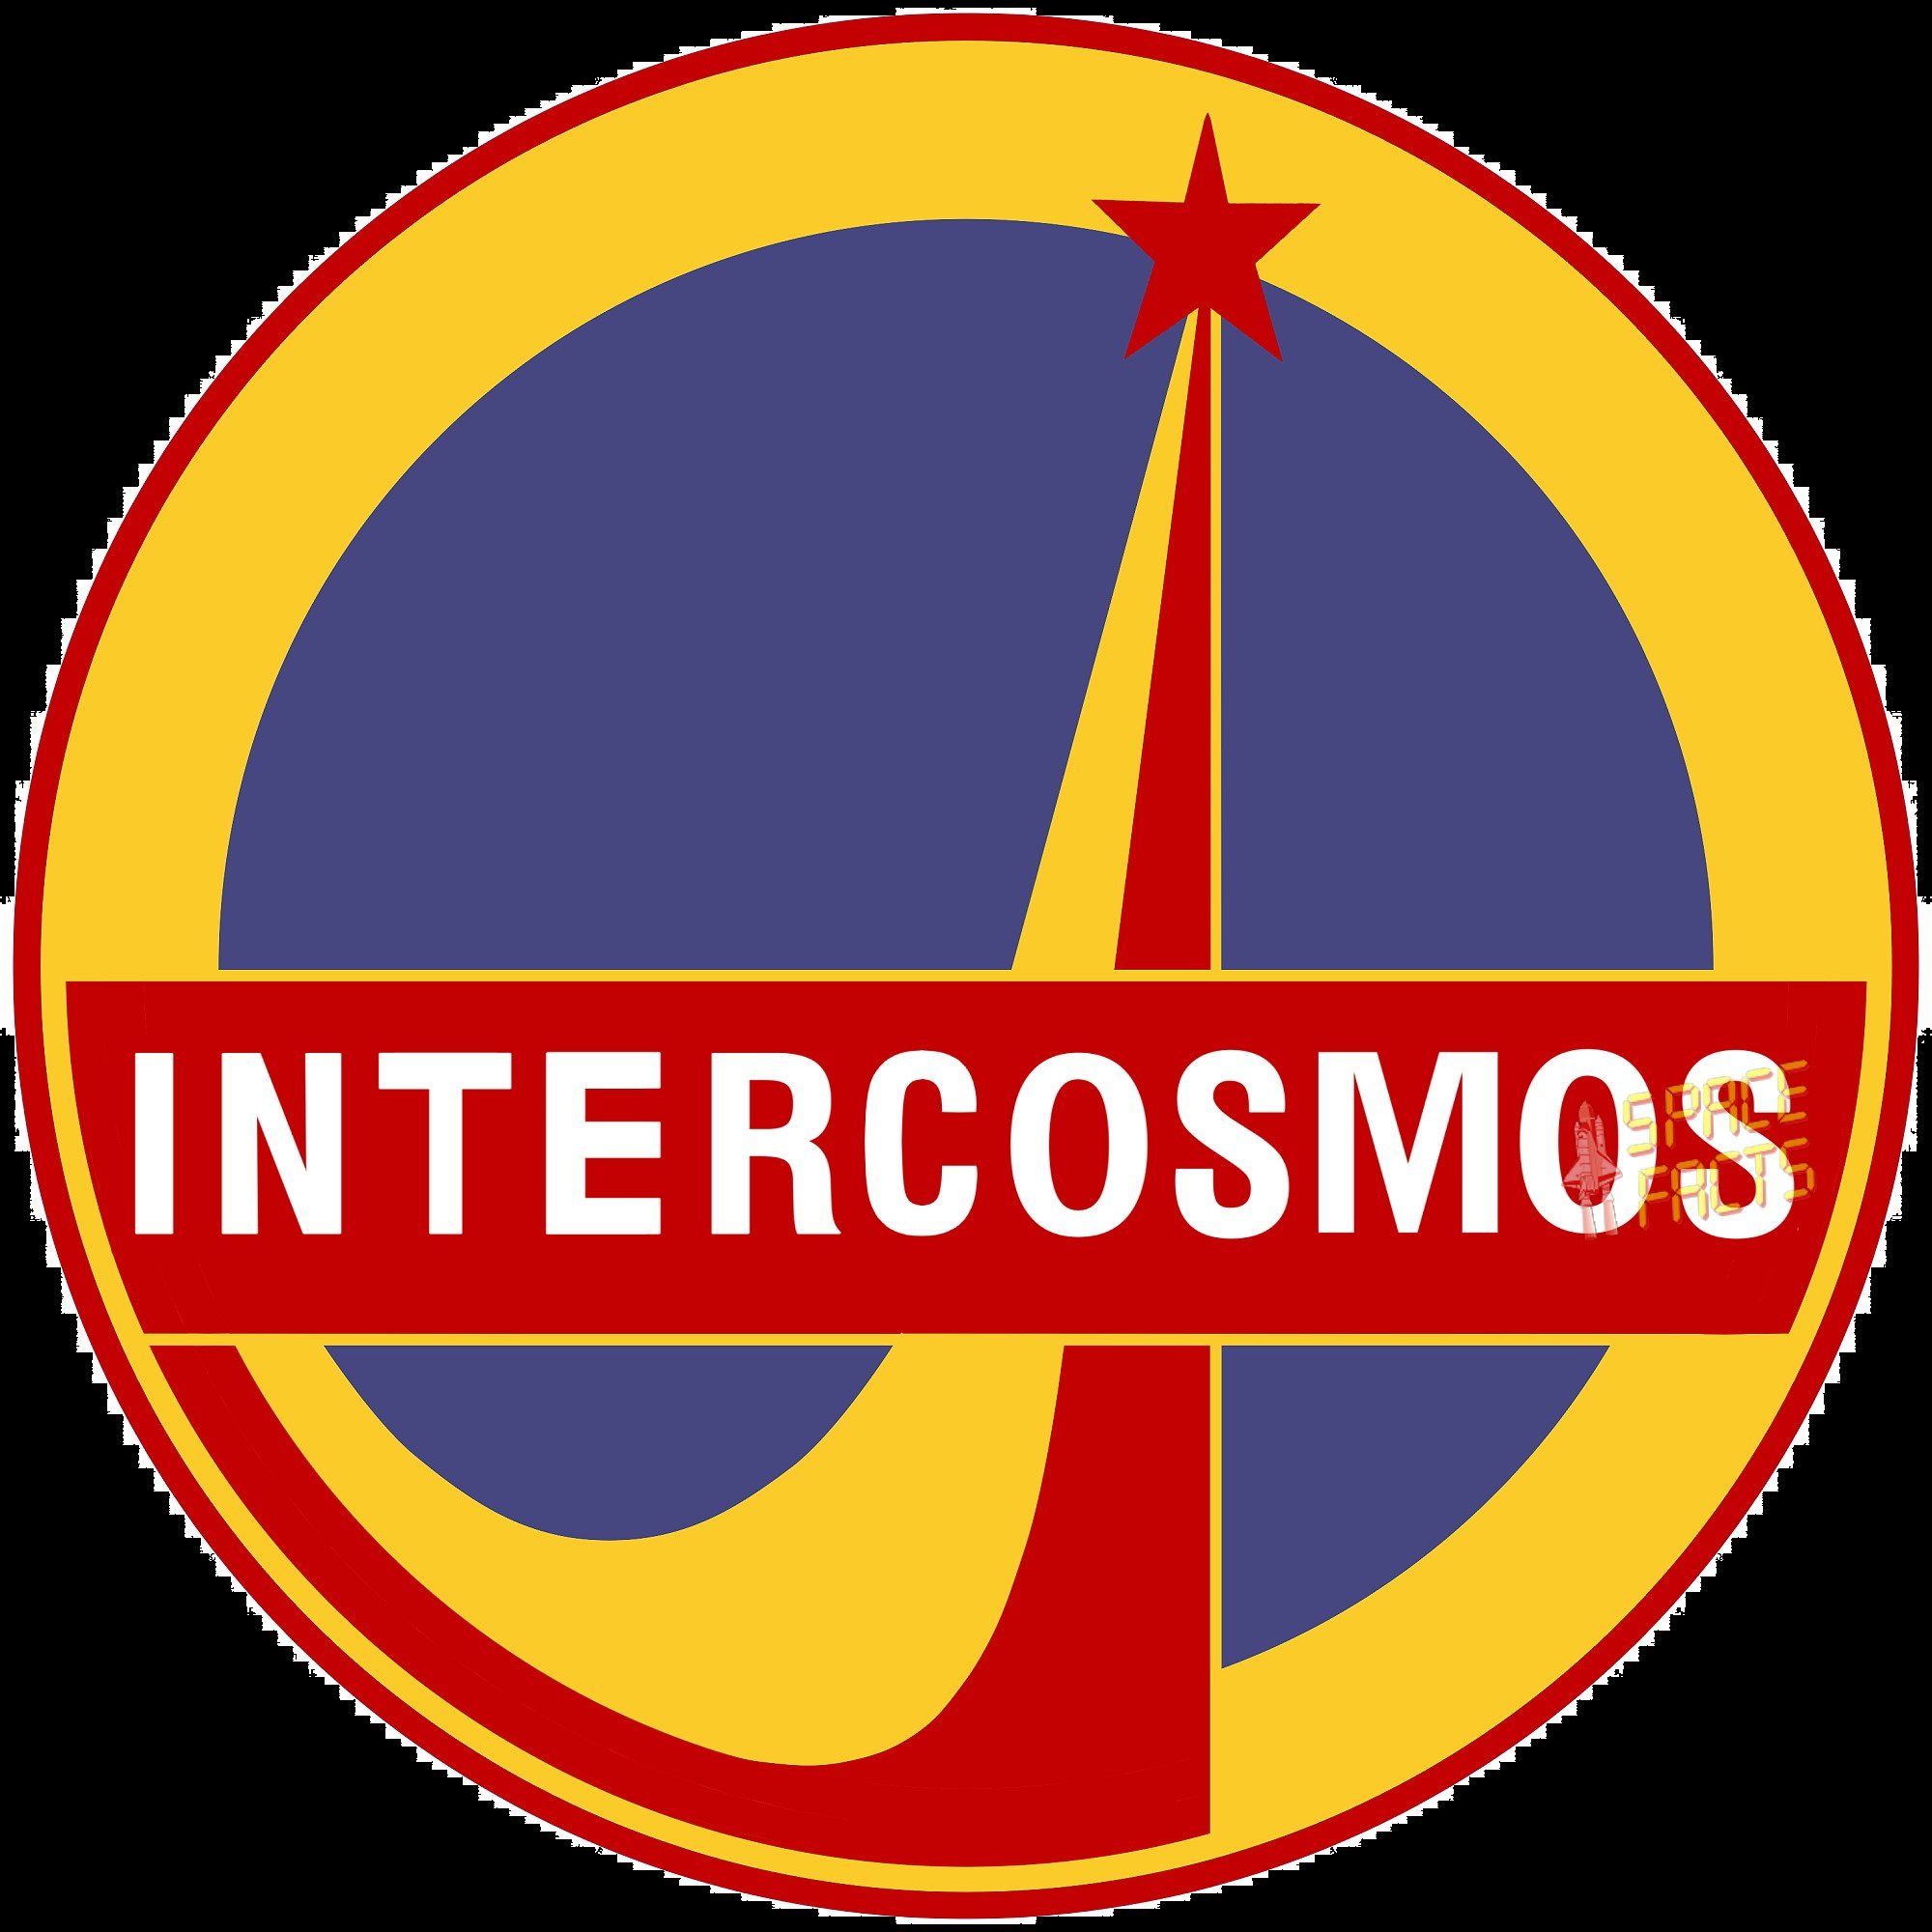 Programme Intercosmos Intercosmos_latin